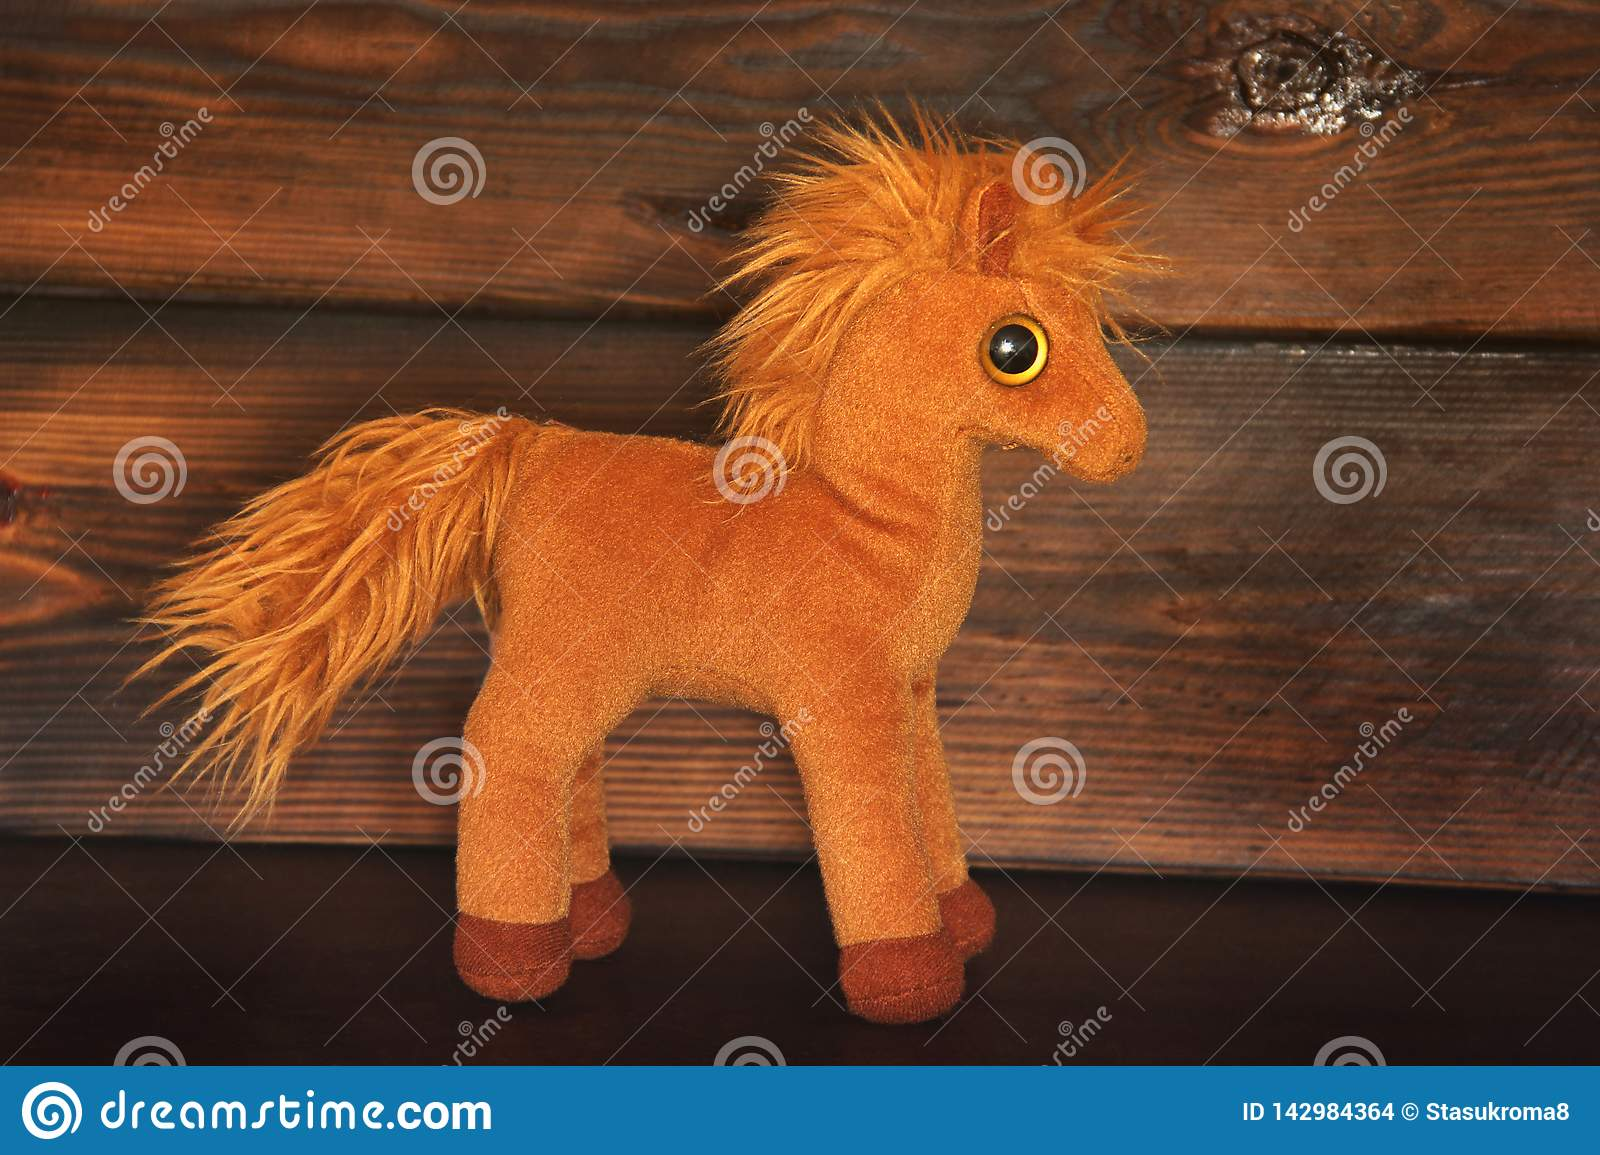 Soft toy on wooden background. Horse